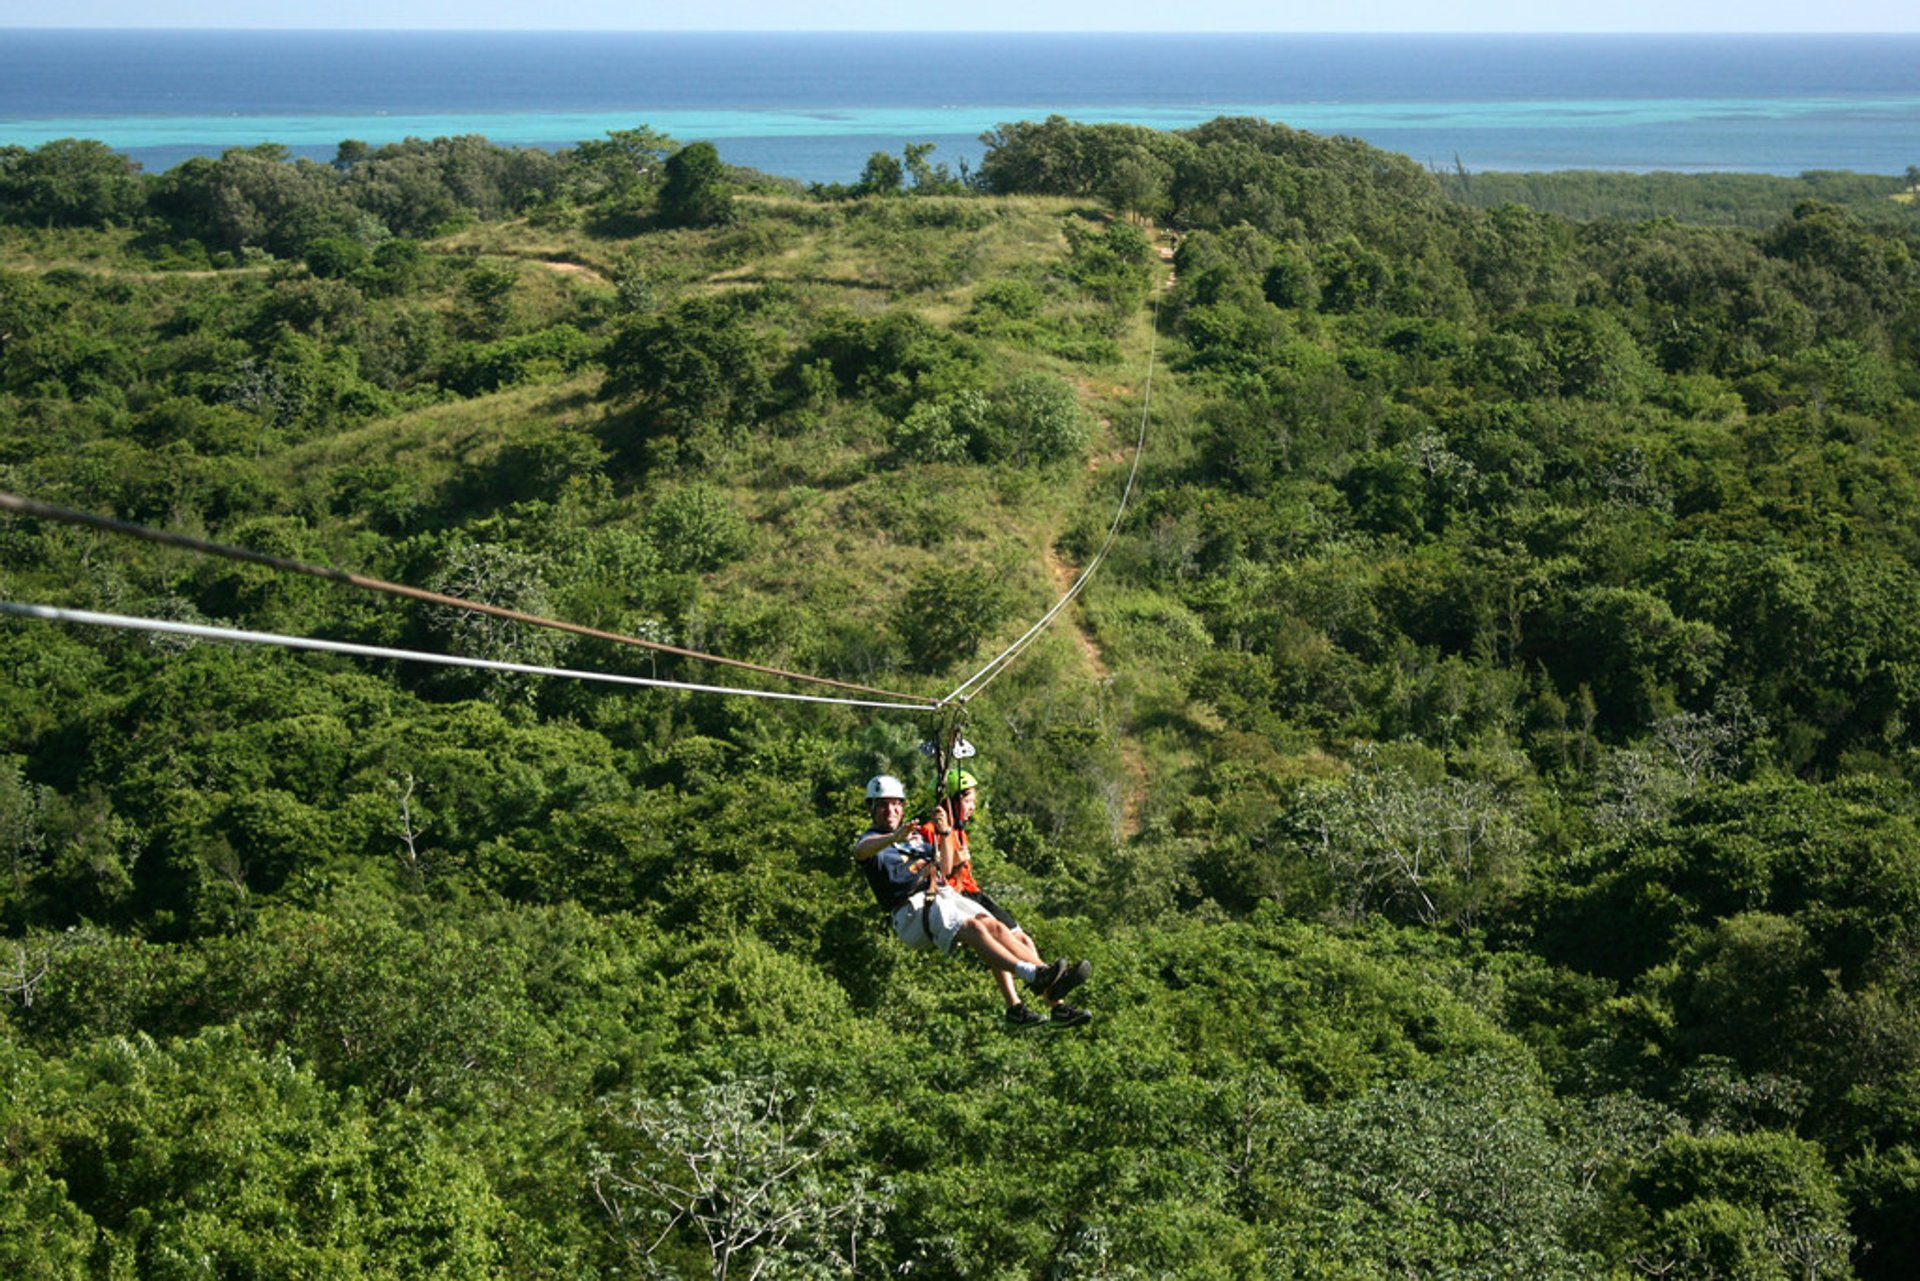 Best time to see Ziplining on Roatán in Honduras 2020